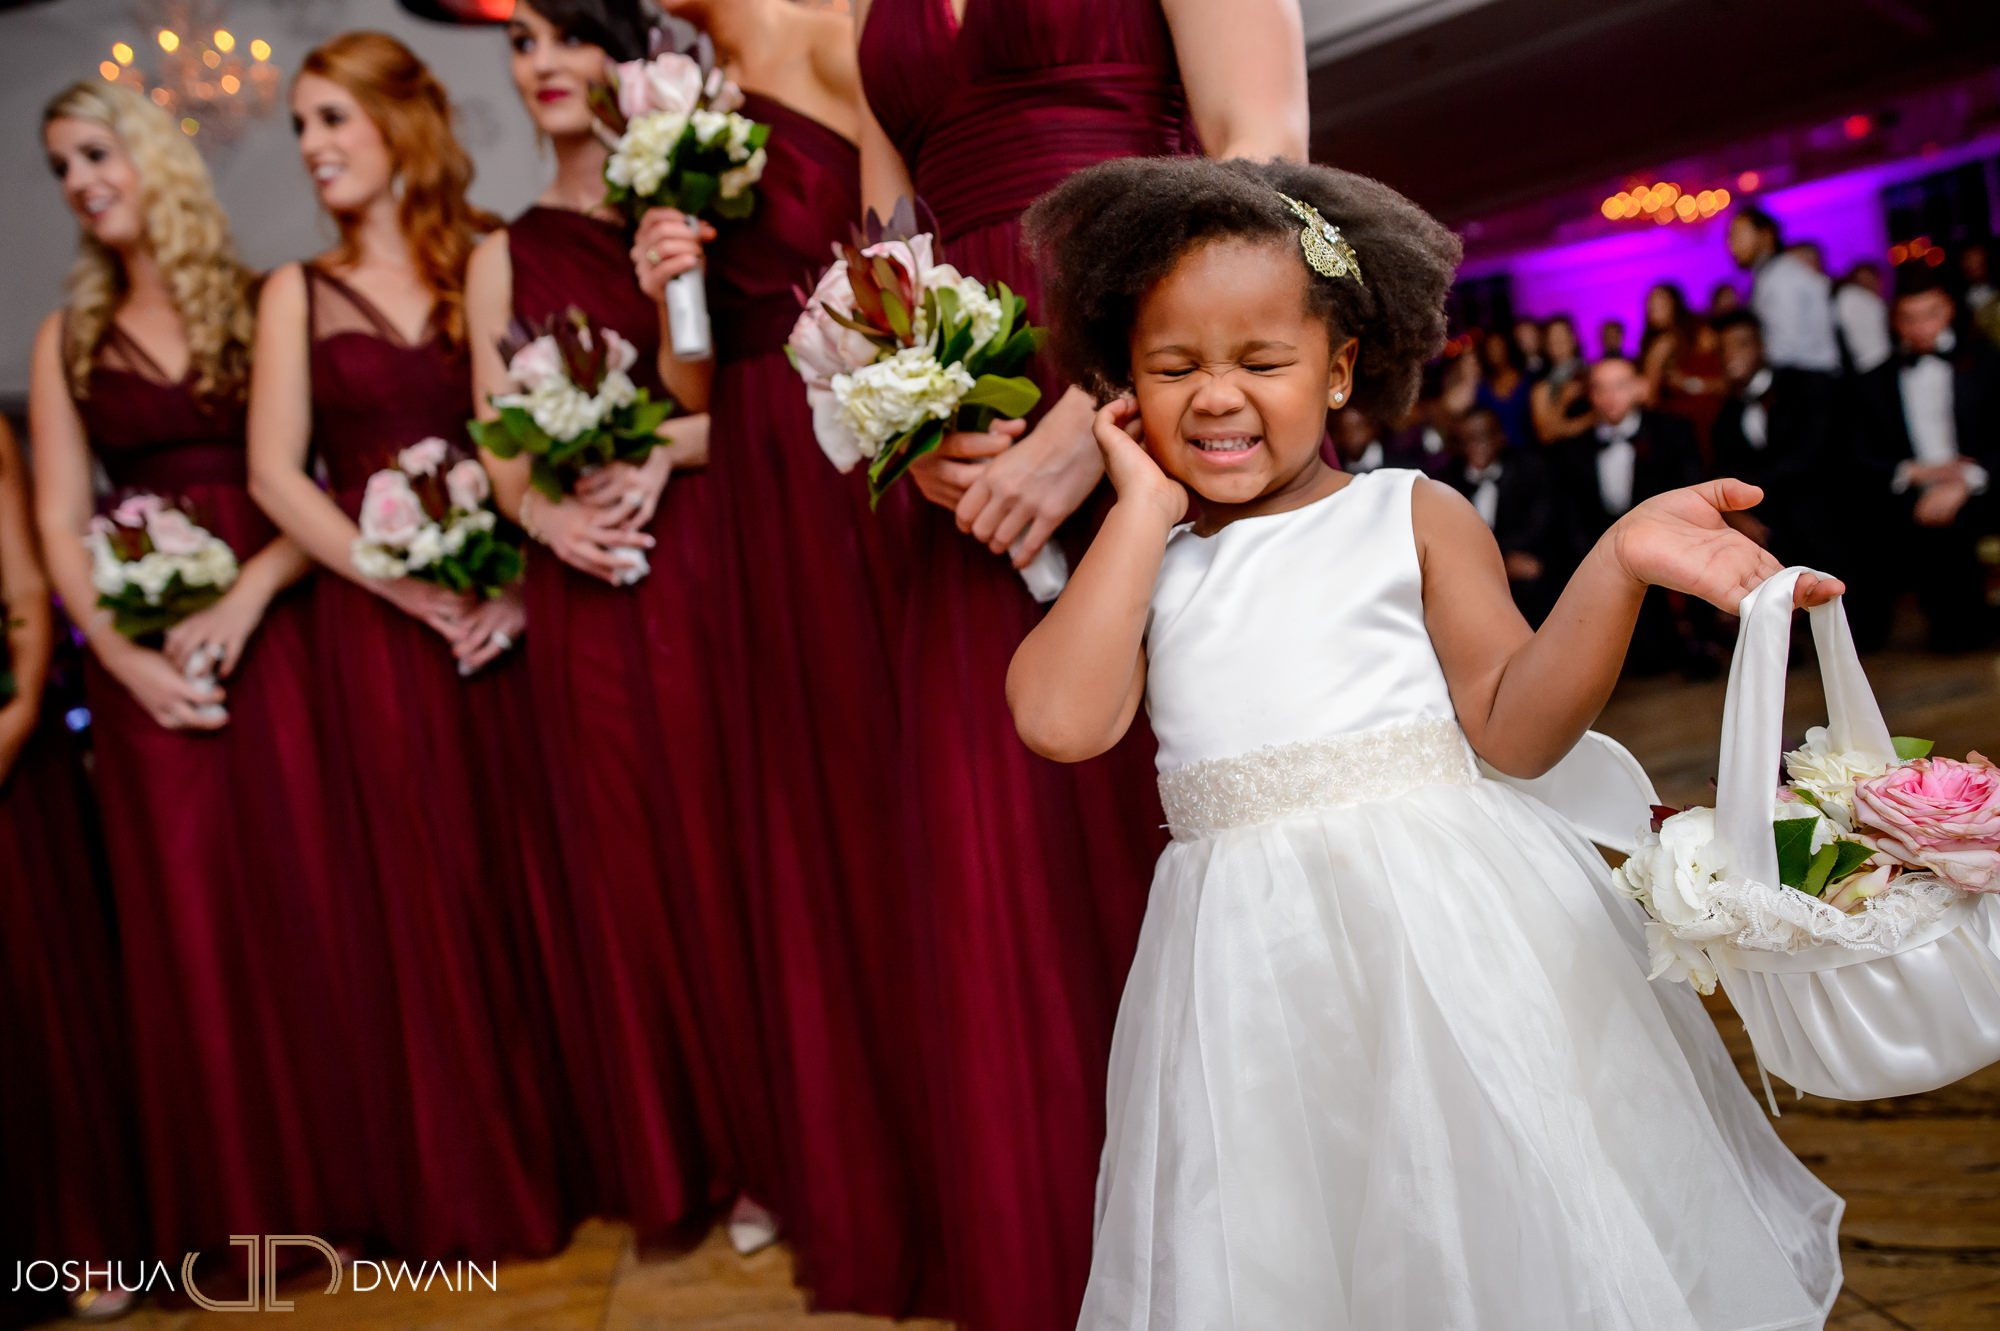 stephanie-richard-31-westmount-country-club-joshua-dwain-nj-wedding-photography